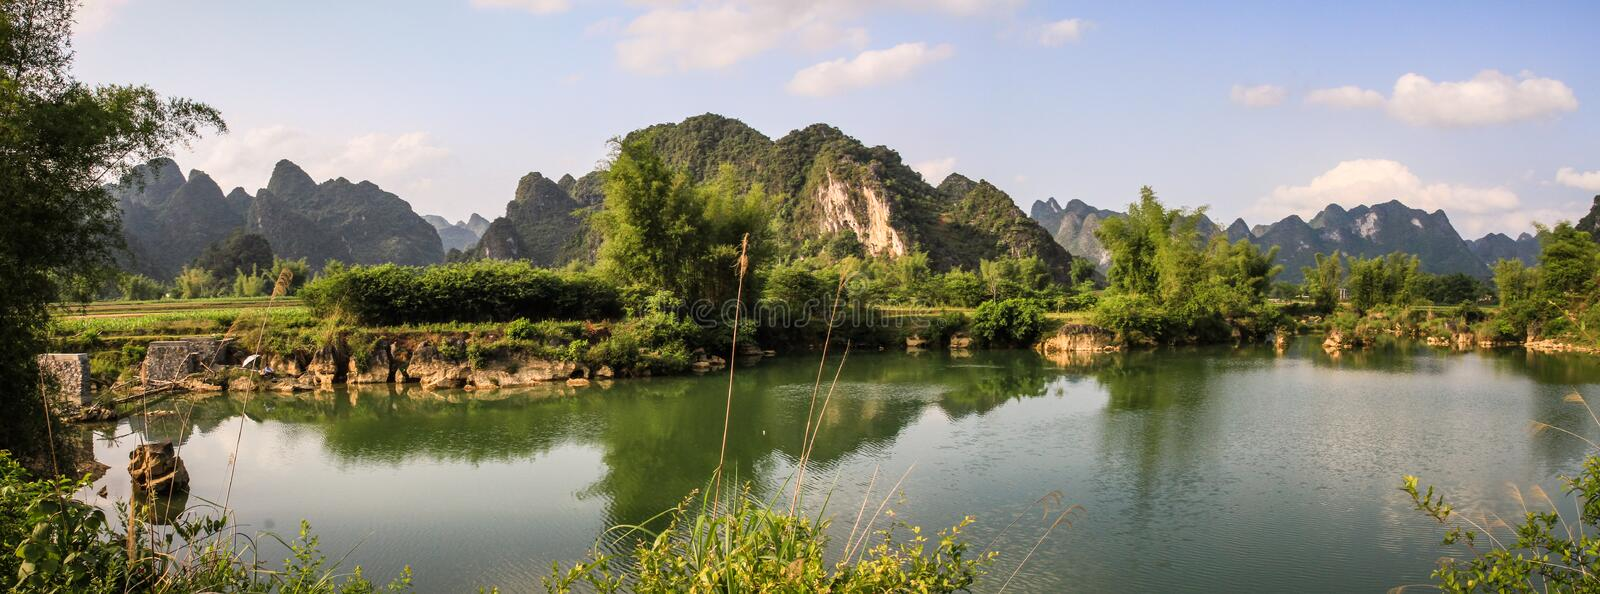 The beautiful cao bang province near the Ban Gioc Waterfall, cao bang province, vietnam stock images